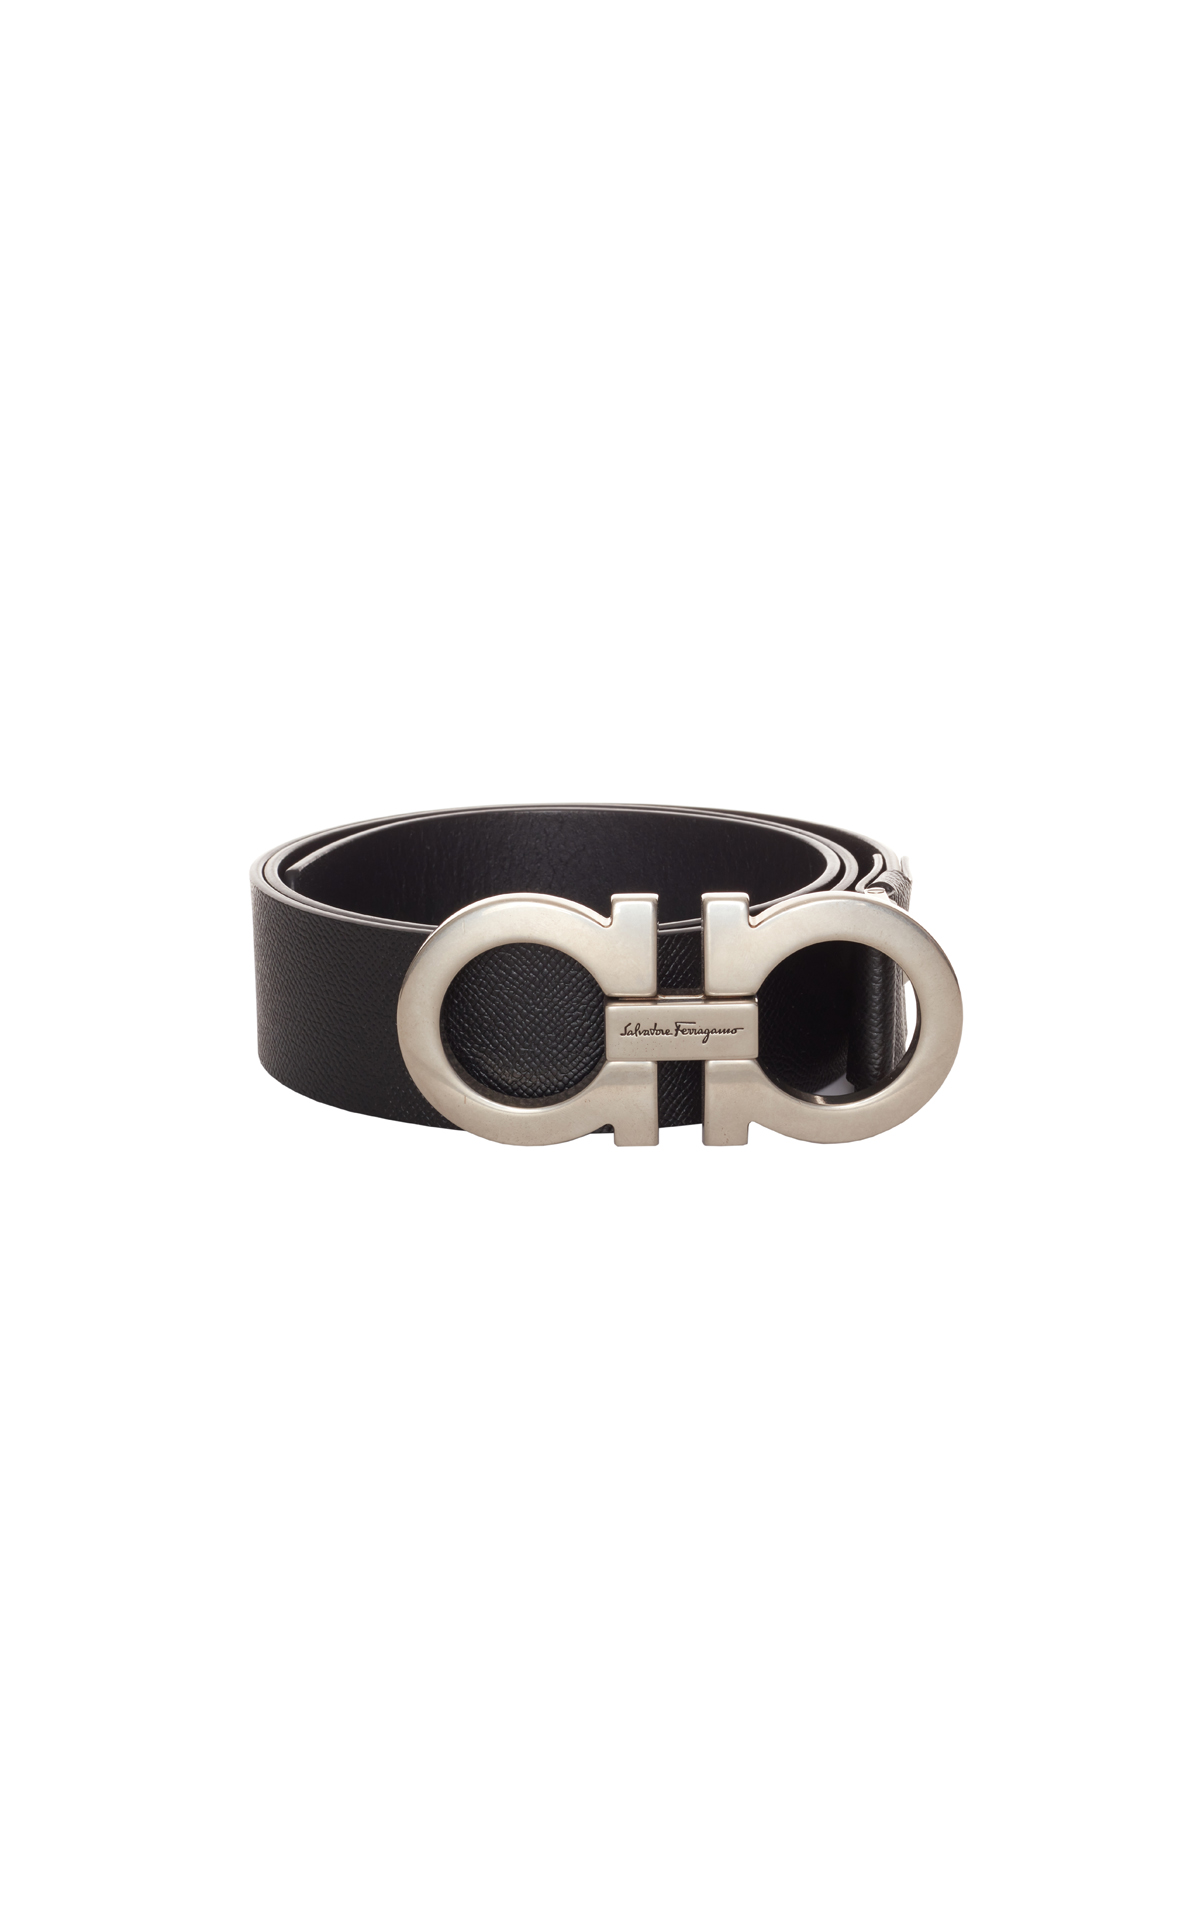 Salvatore Ferragamo Men's double gancio belt from Bicester Village